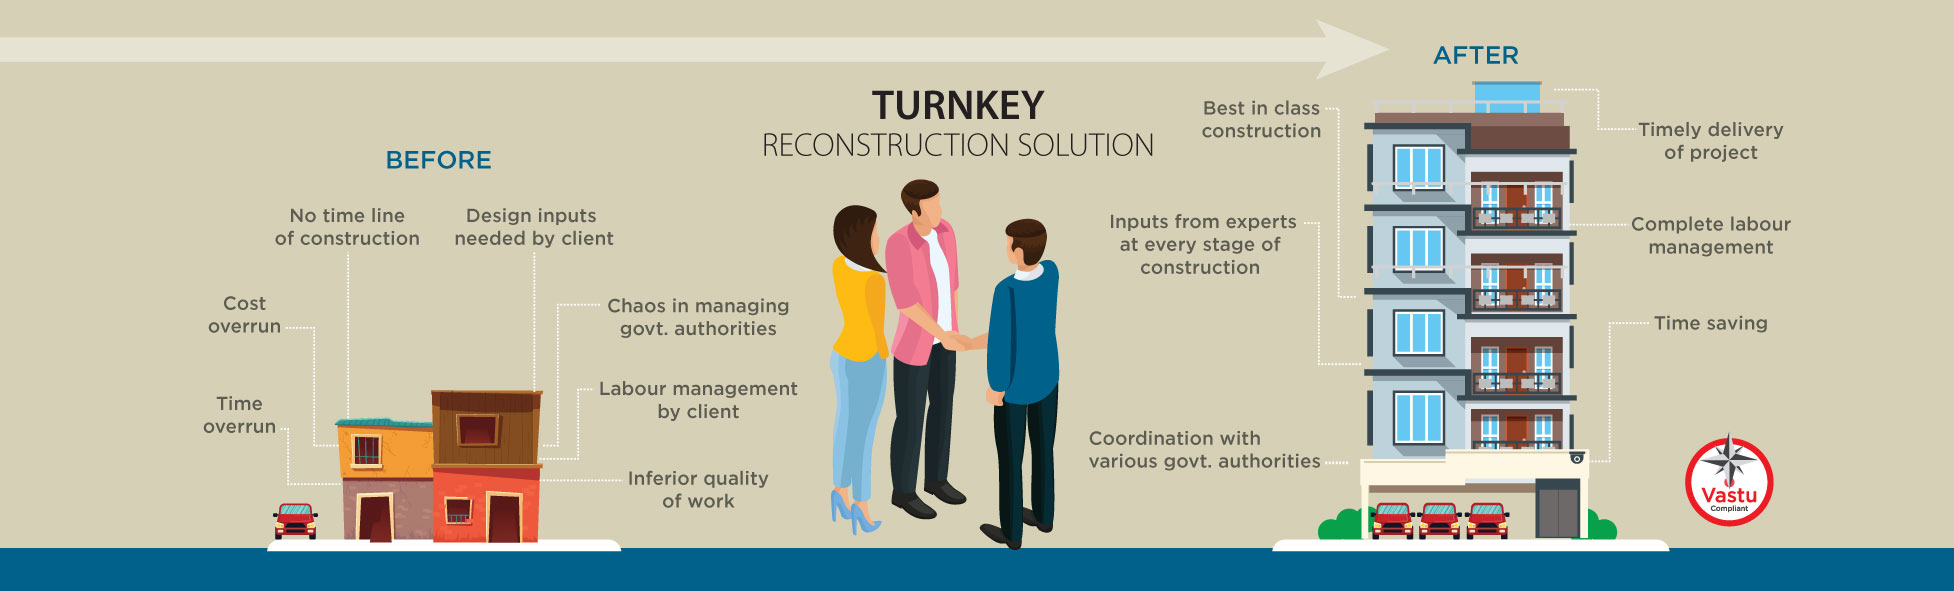 Turnkey Reconstruction Solution